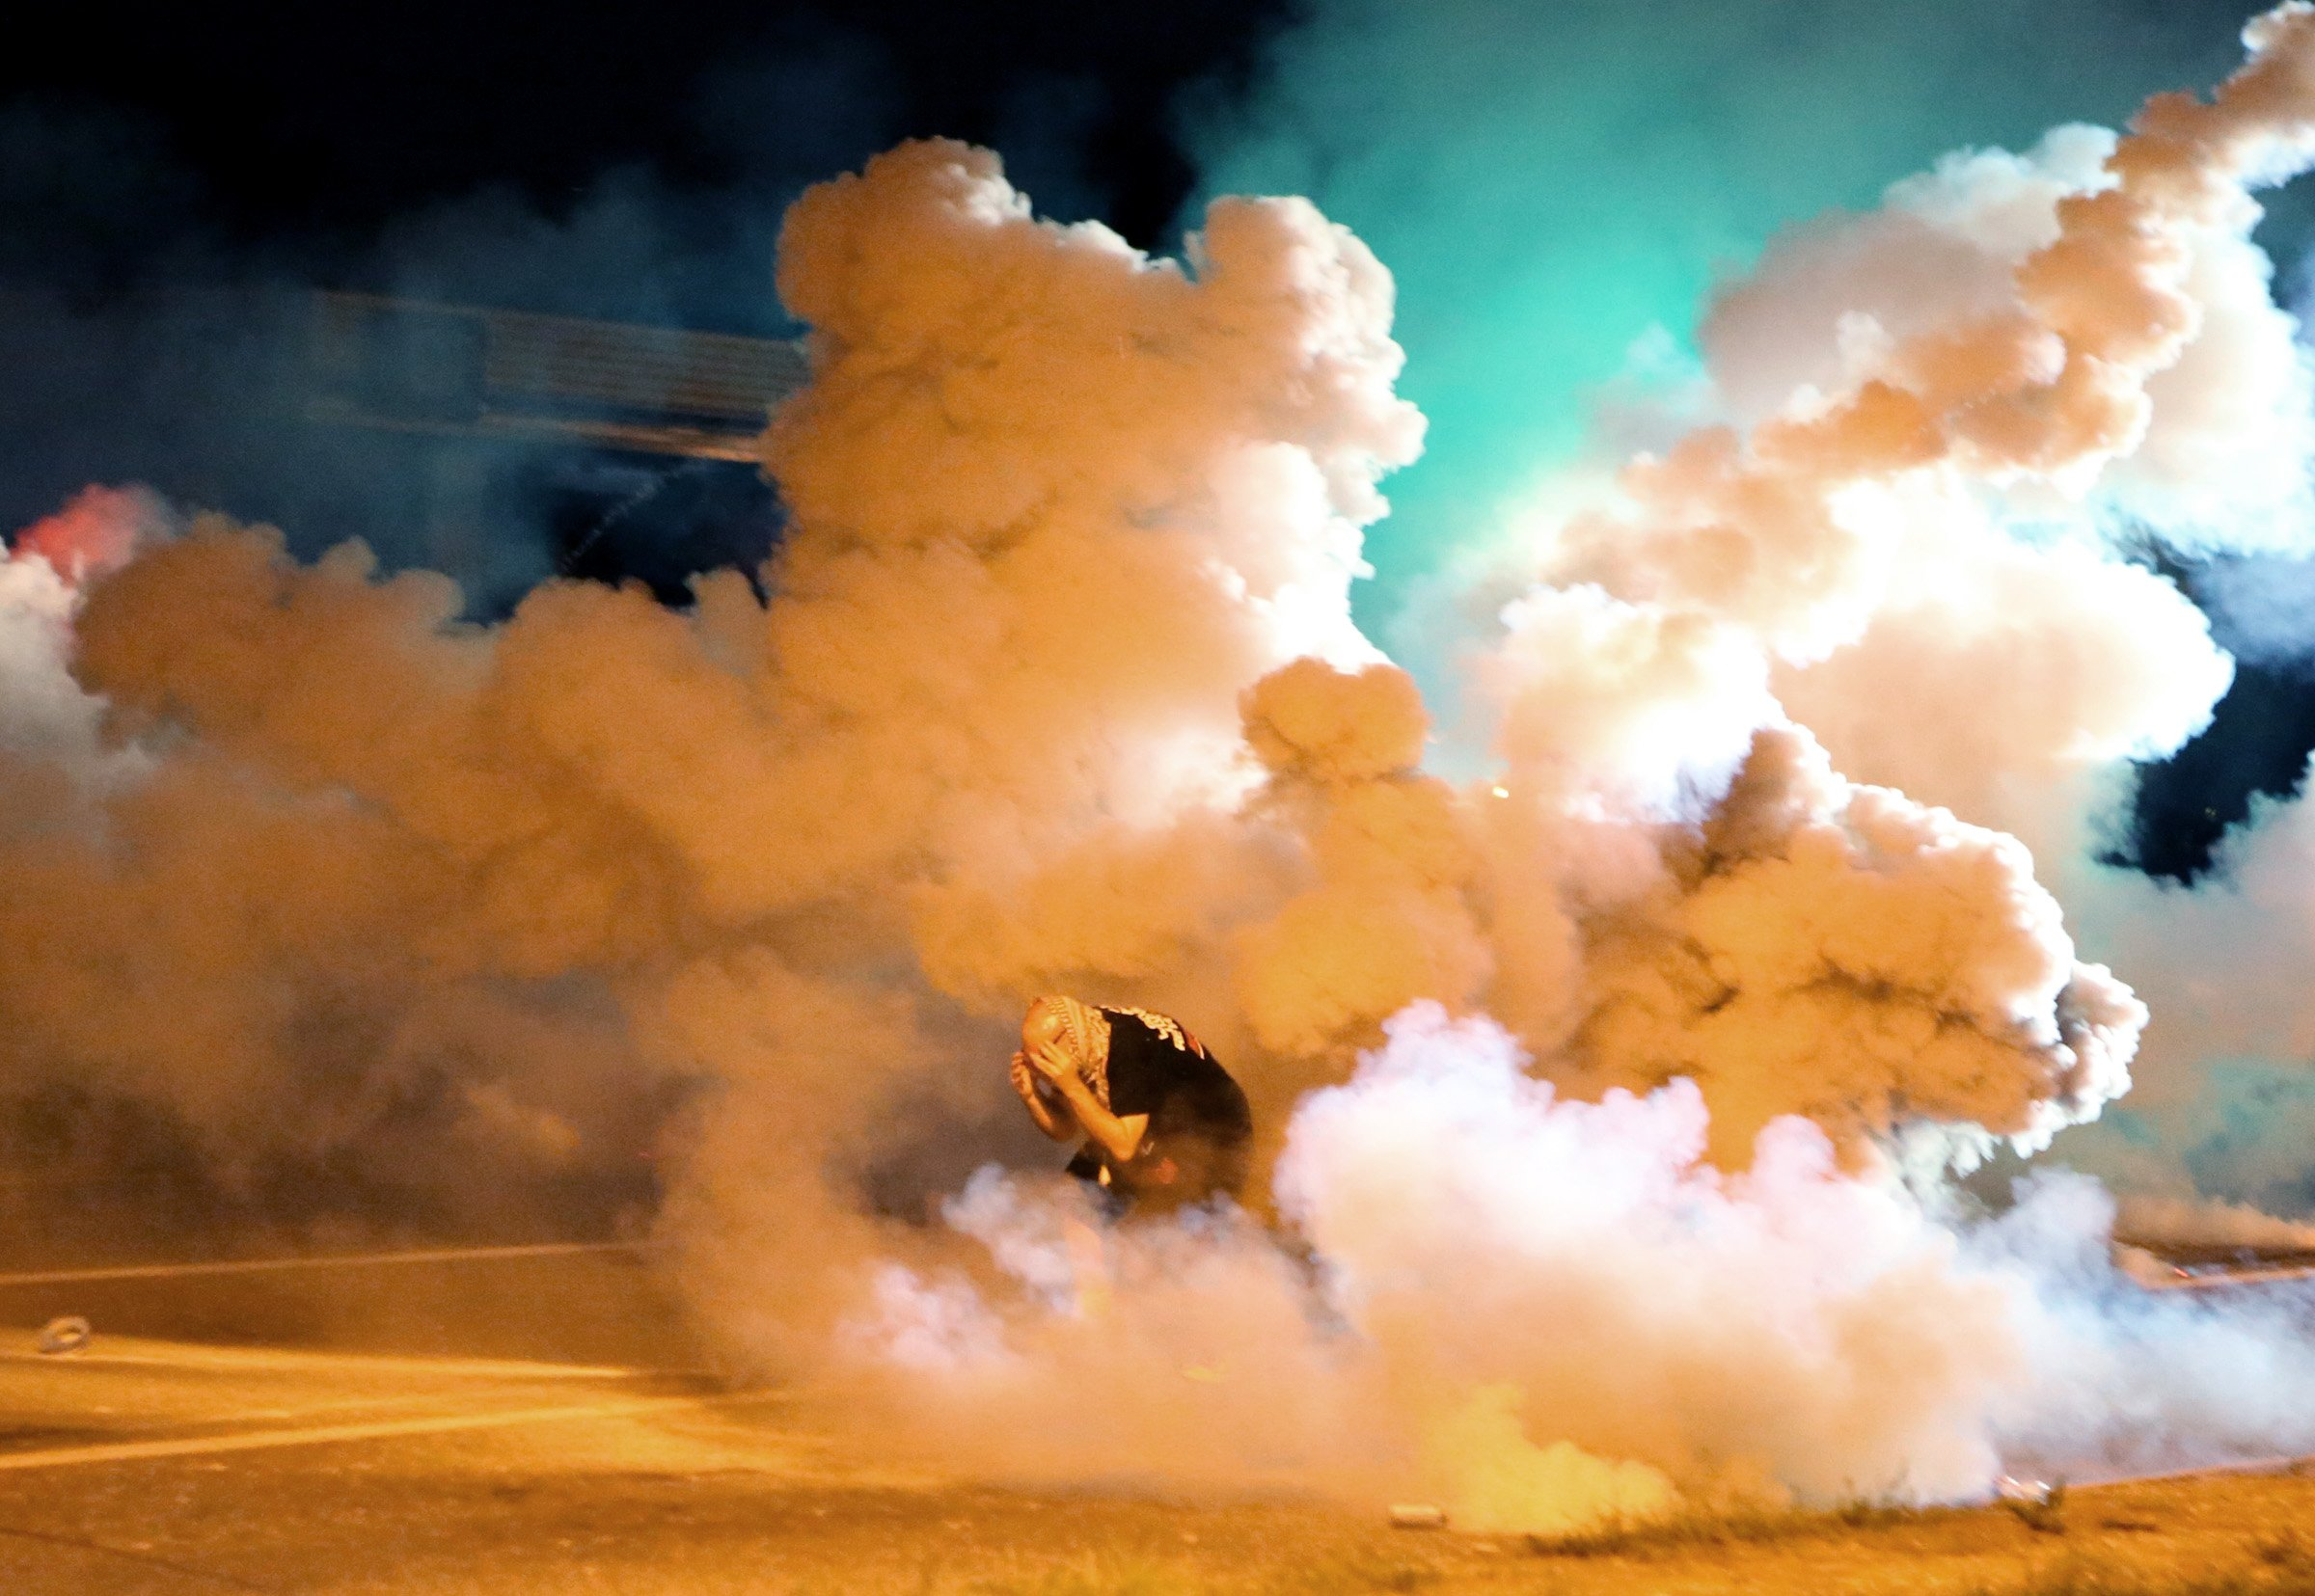 A protester takes shelter from smoke billowing around him in Ferguson, Mo. on Aug. 13, 2014.